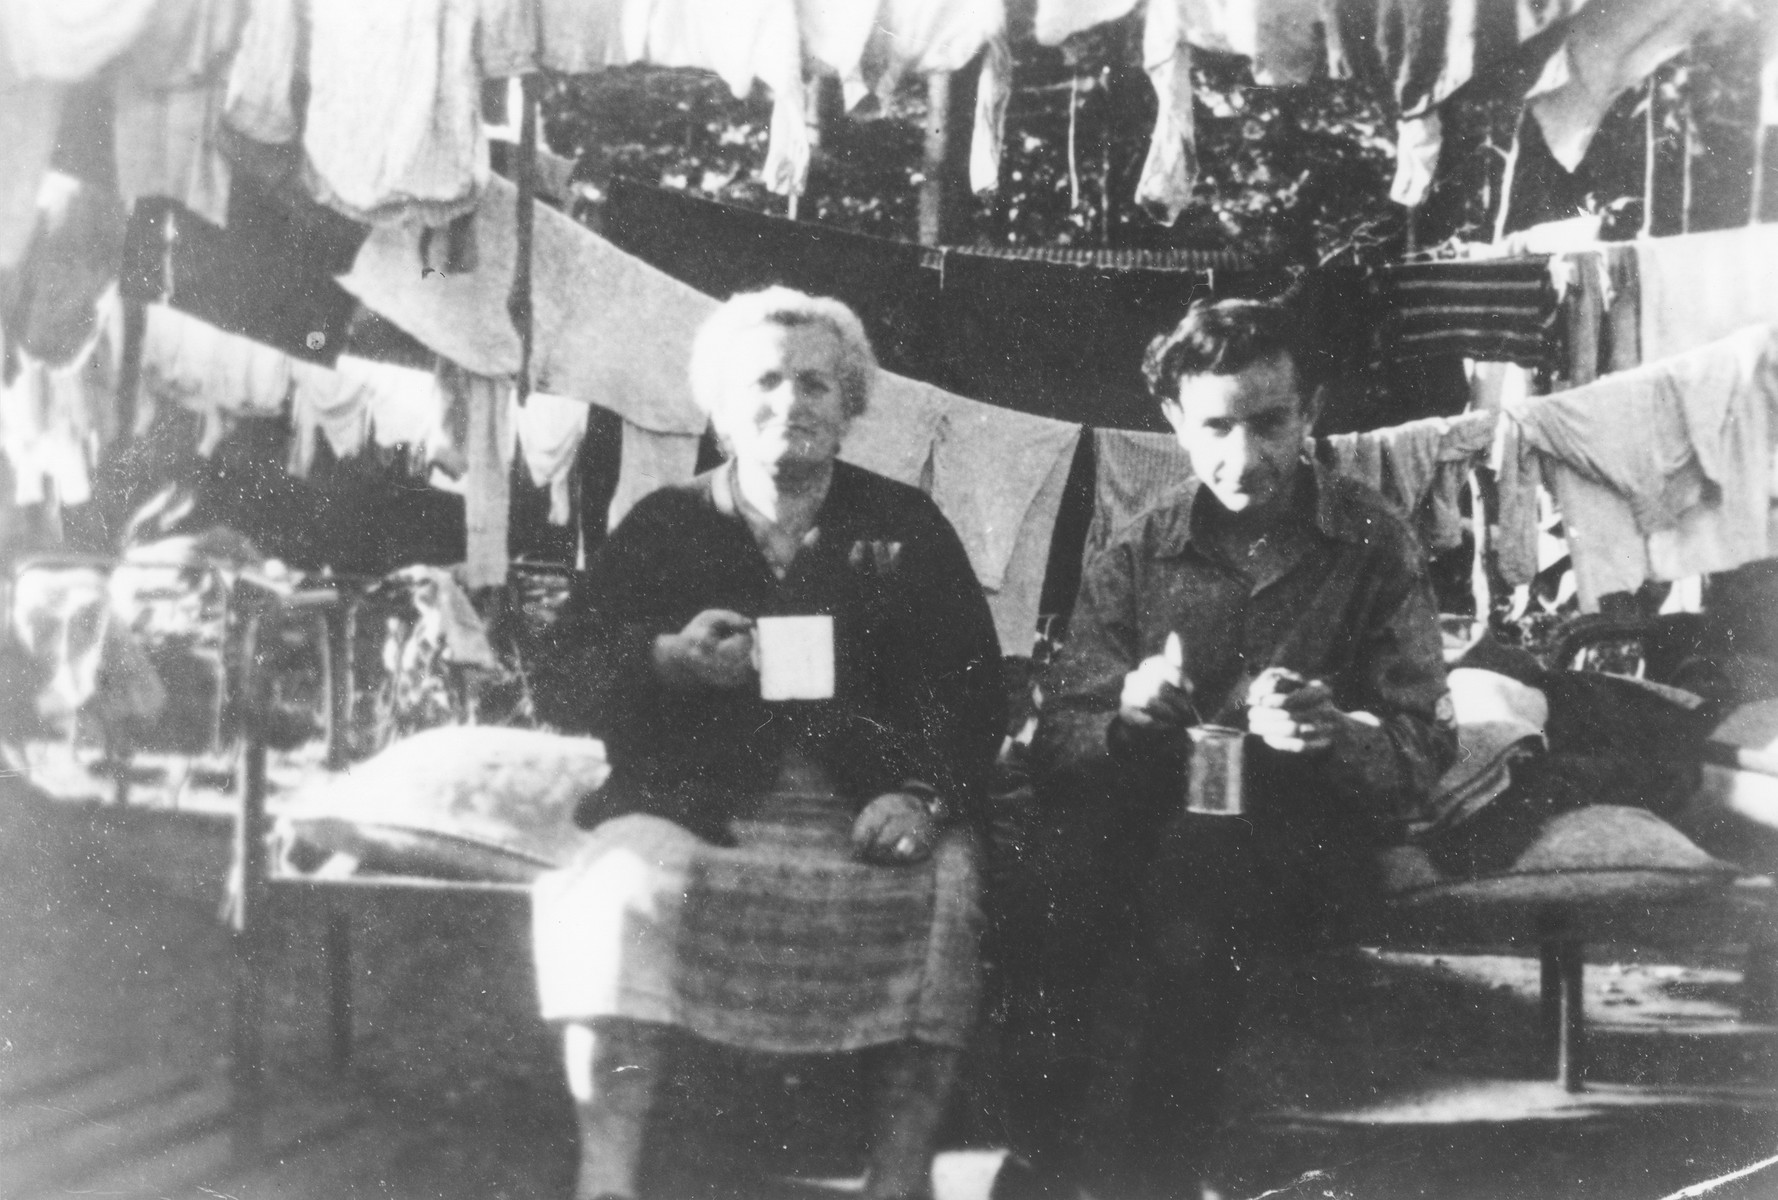 Two former passengers of the Exodus 1947 have a hot drink while sitting on a cot in the Poppendorf displaced persons camp.